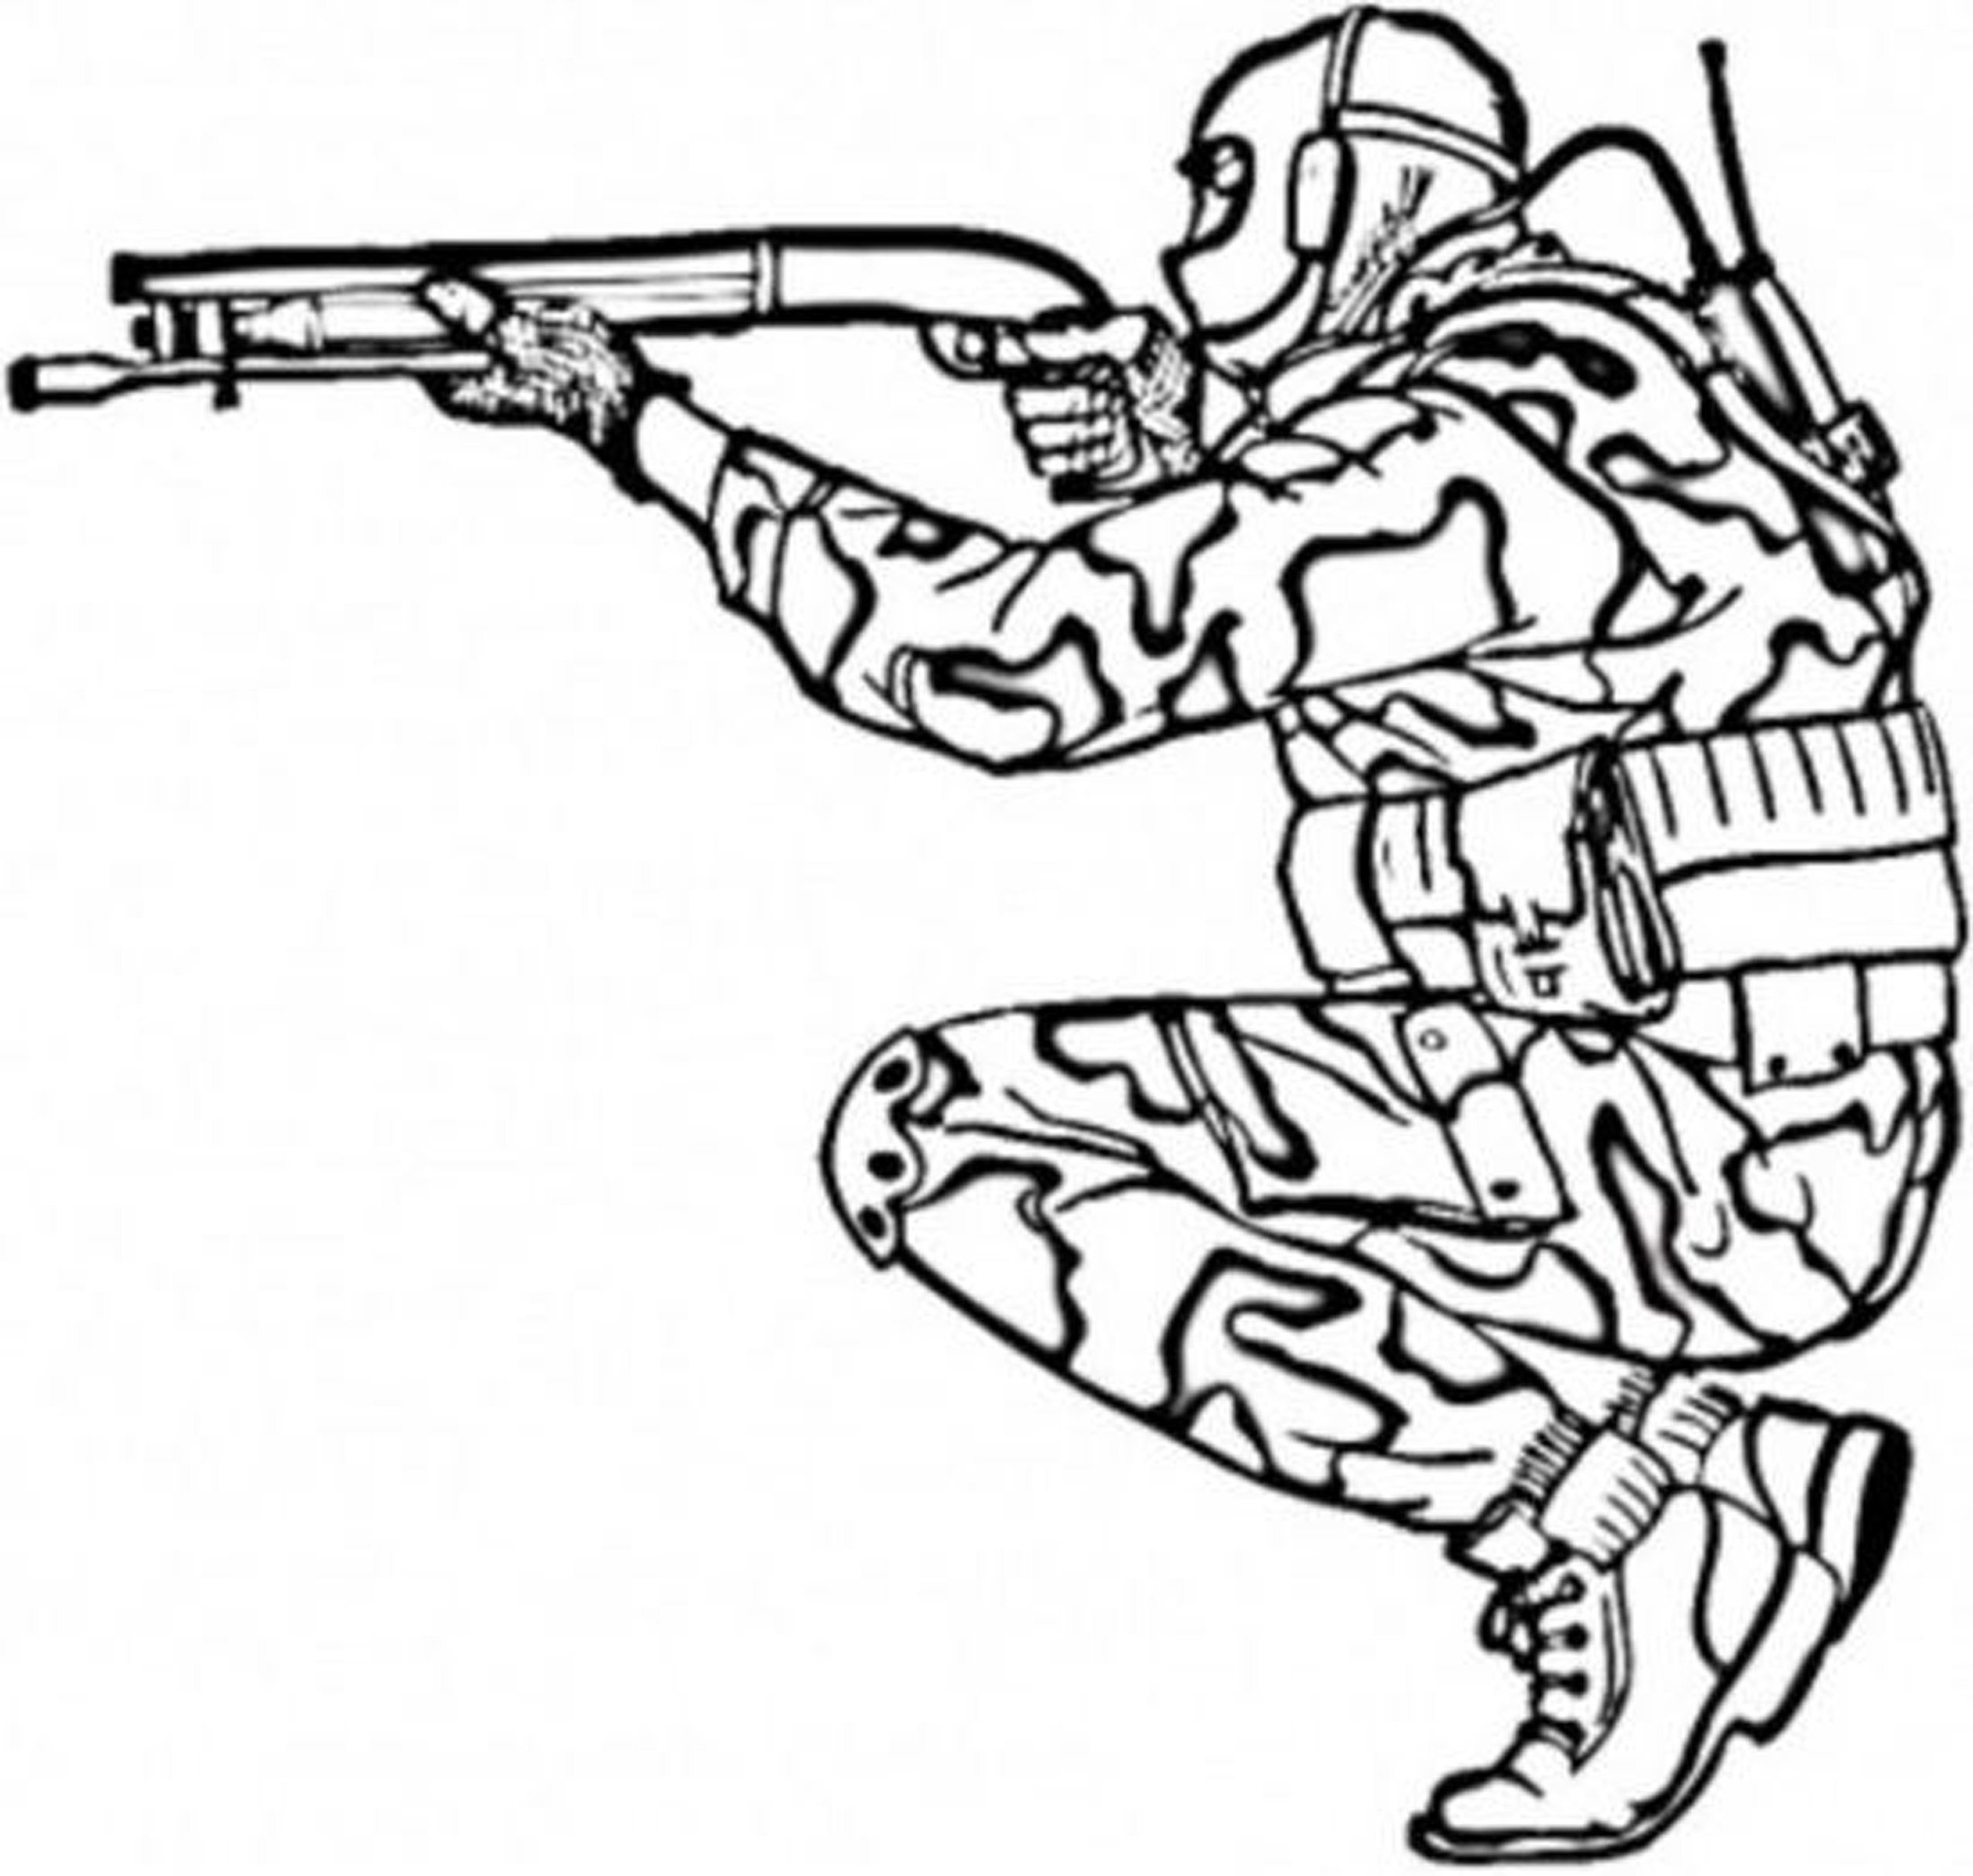 2550x2425 Cool Military Army Printable Coloring Pages For Boys On Army